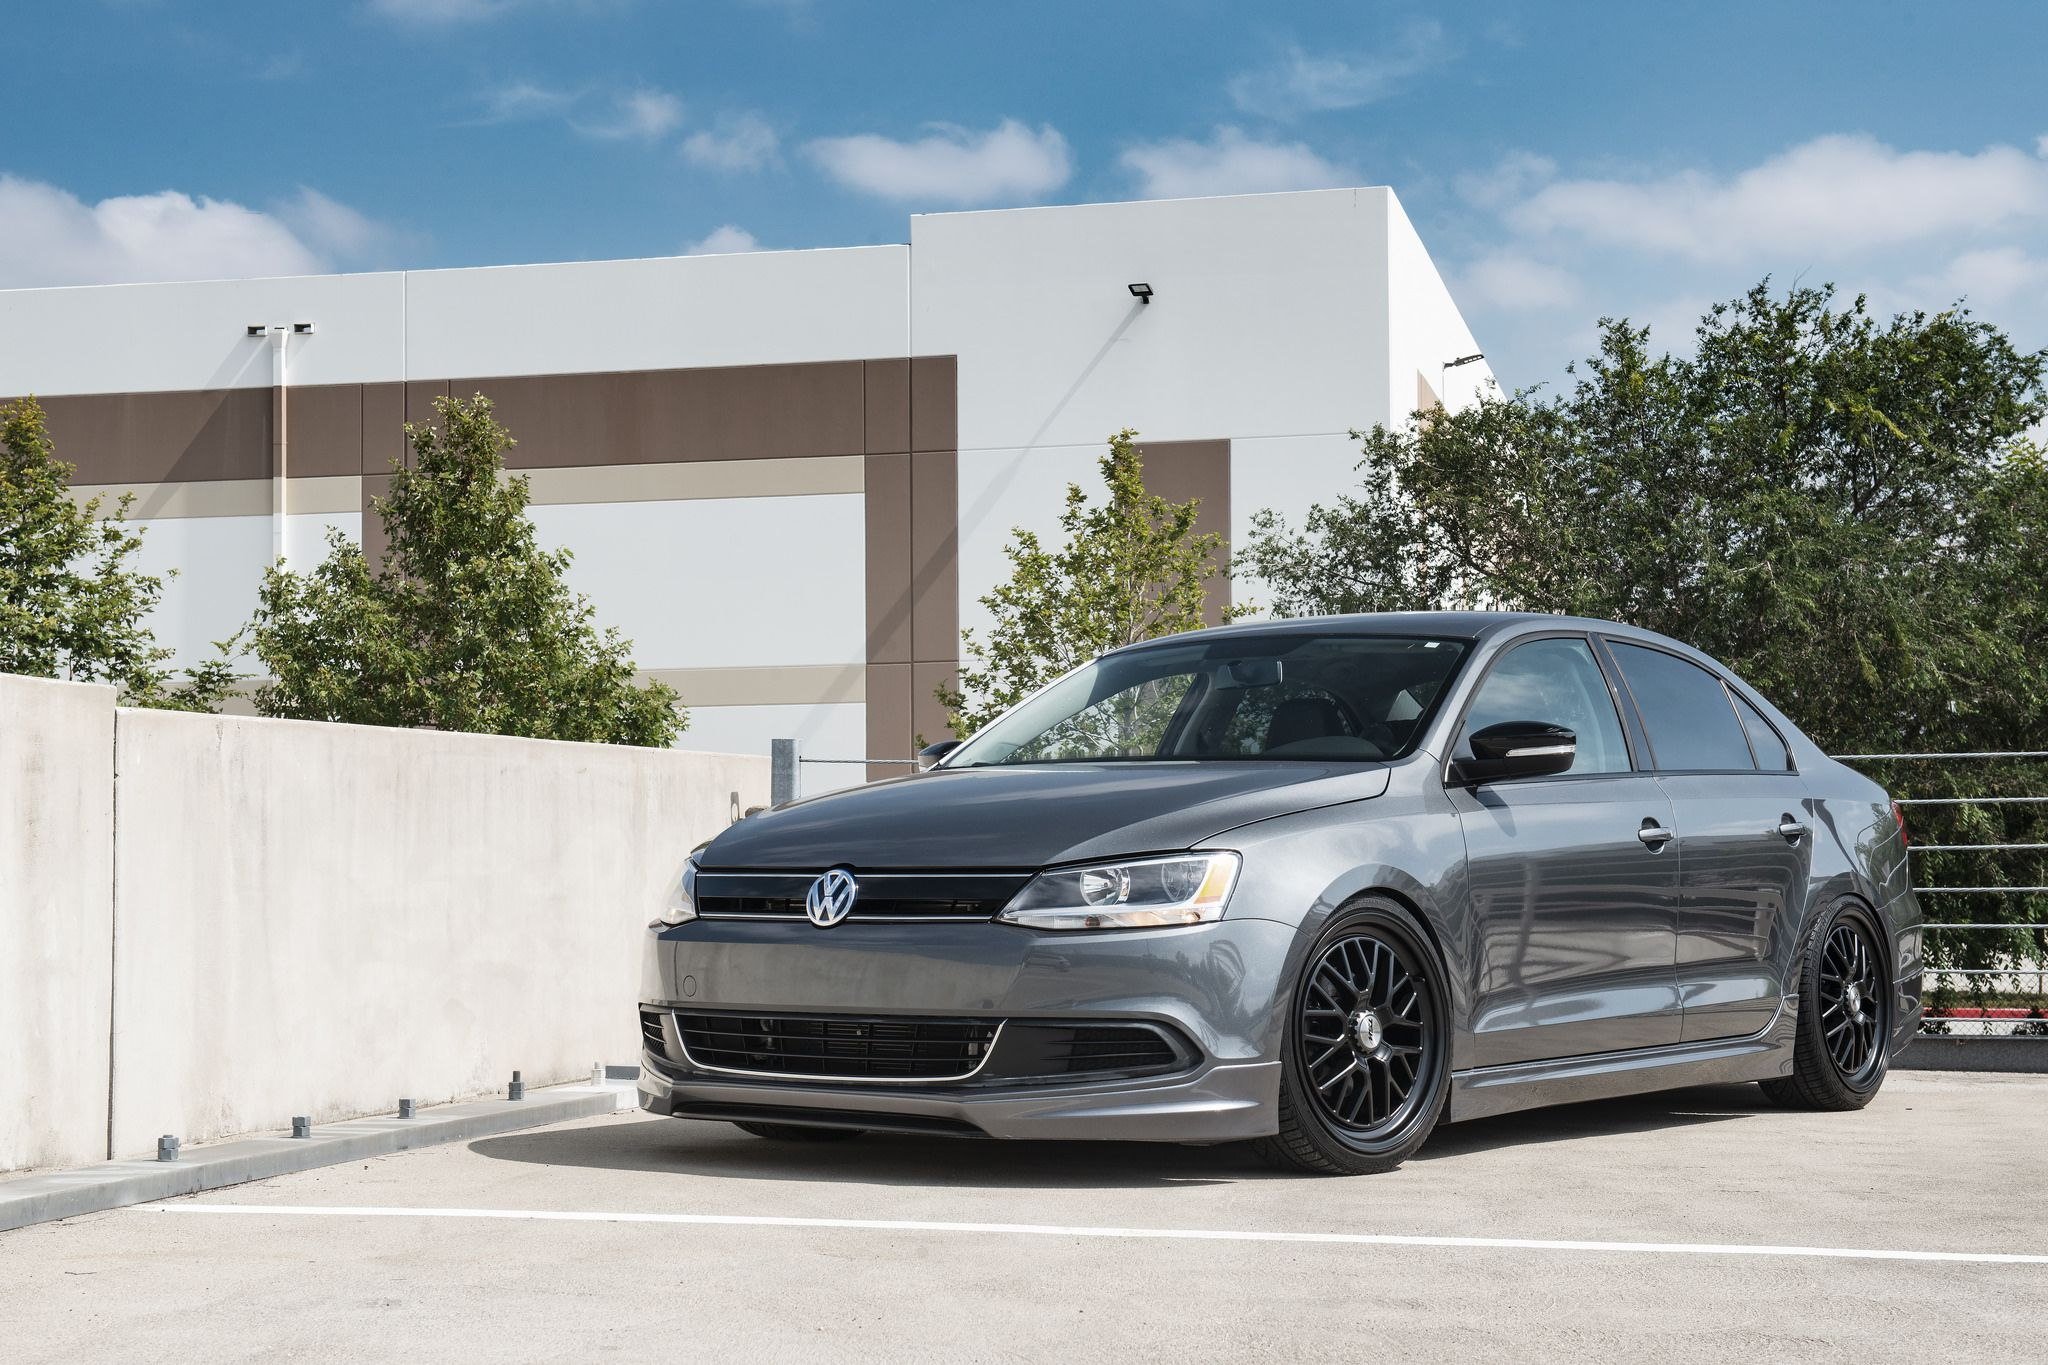 6 photos of gray Volkswagen MK6 Jetta